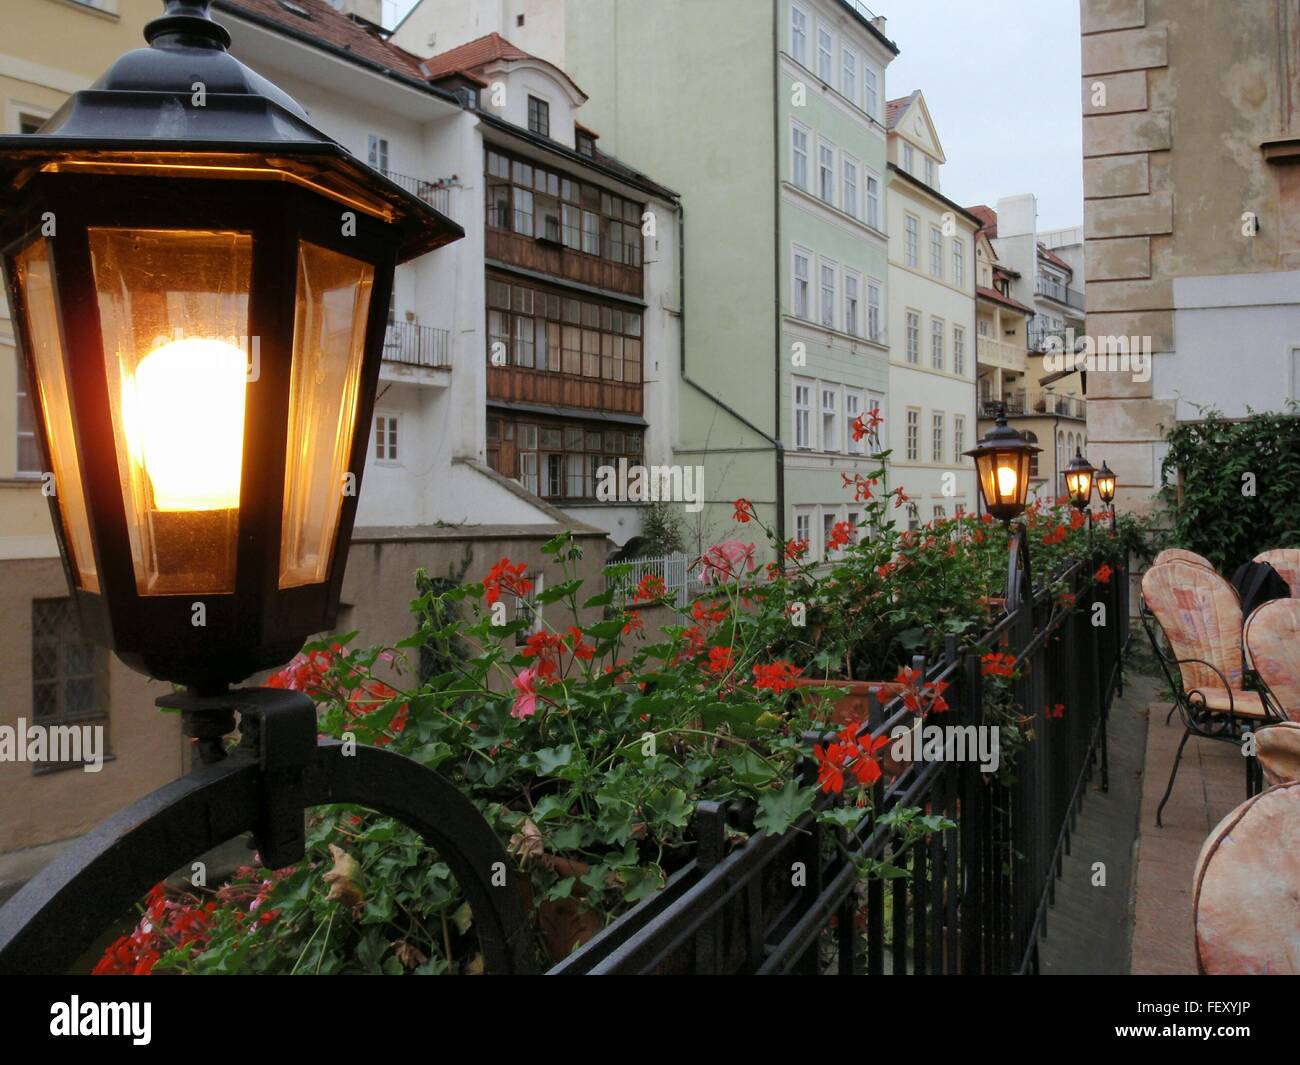 Illuminated Electric Lamp On Fence Outside Buildings - Stock Image